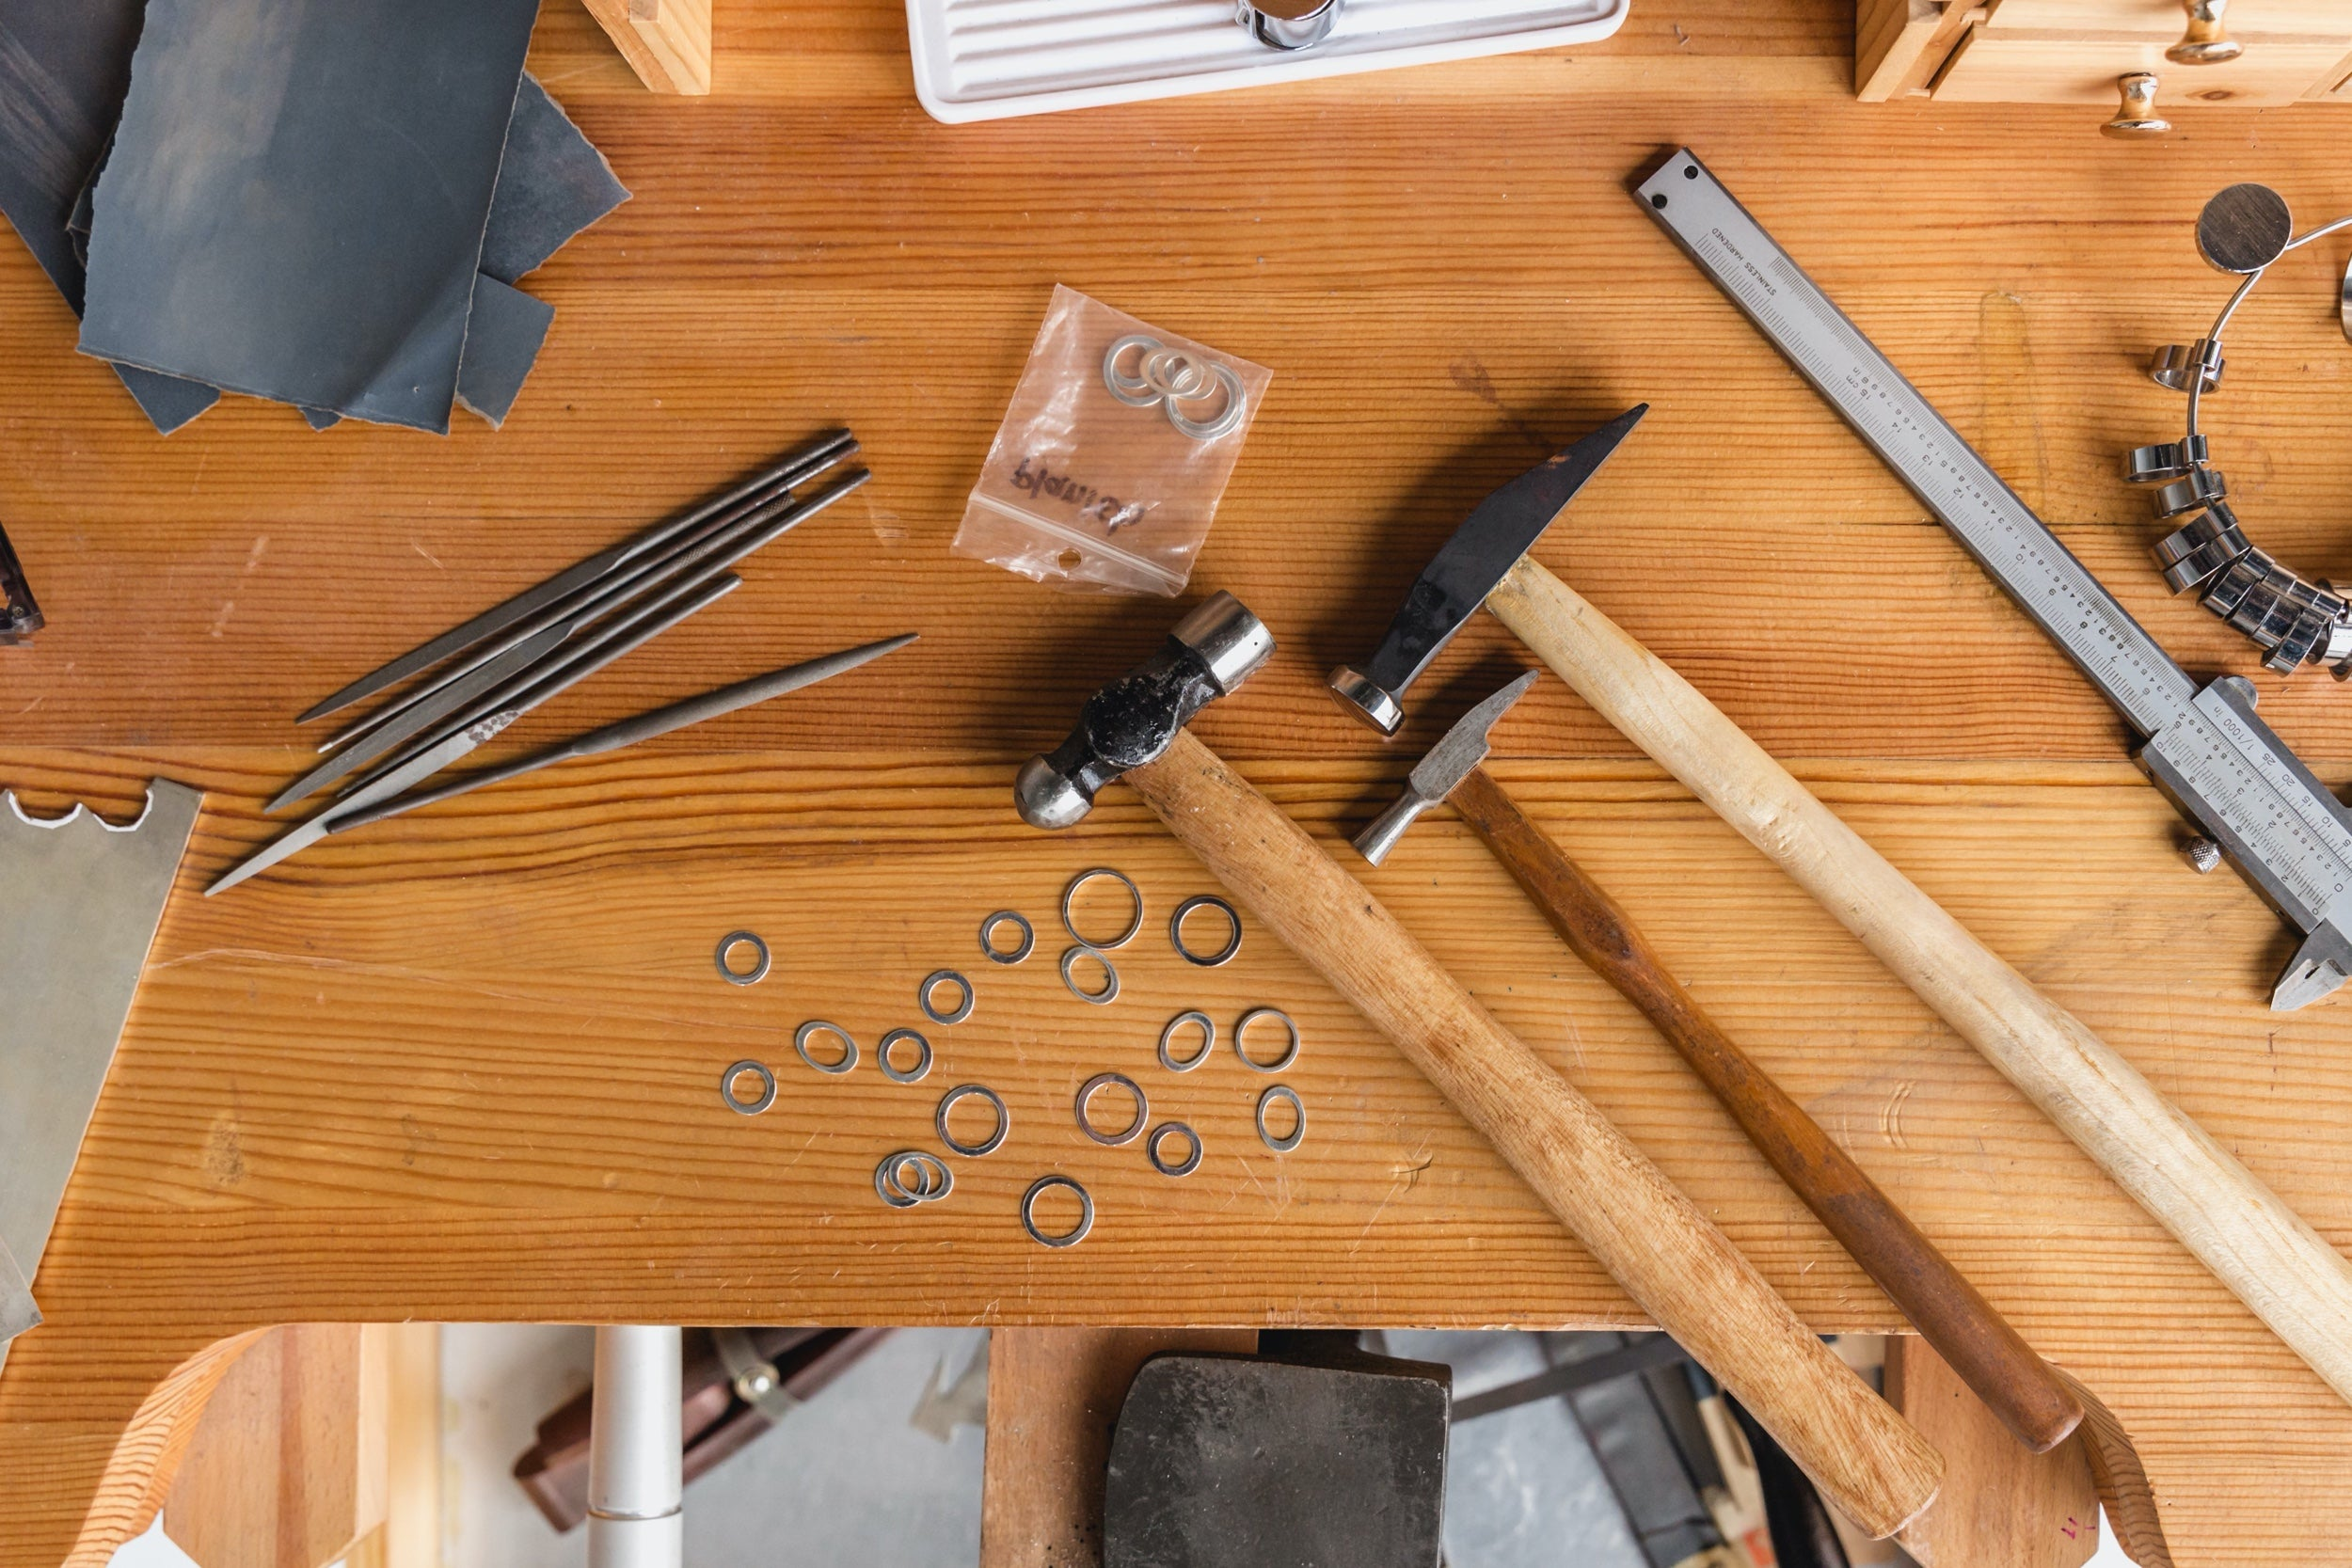 Overhead shot of a workspace covered in jewelry making tools